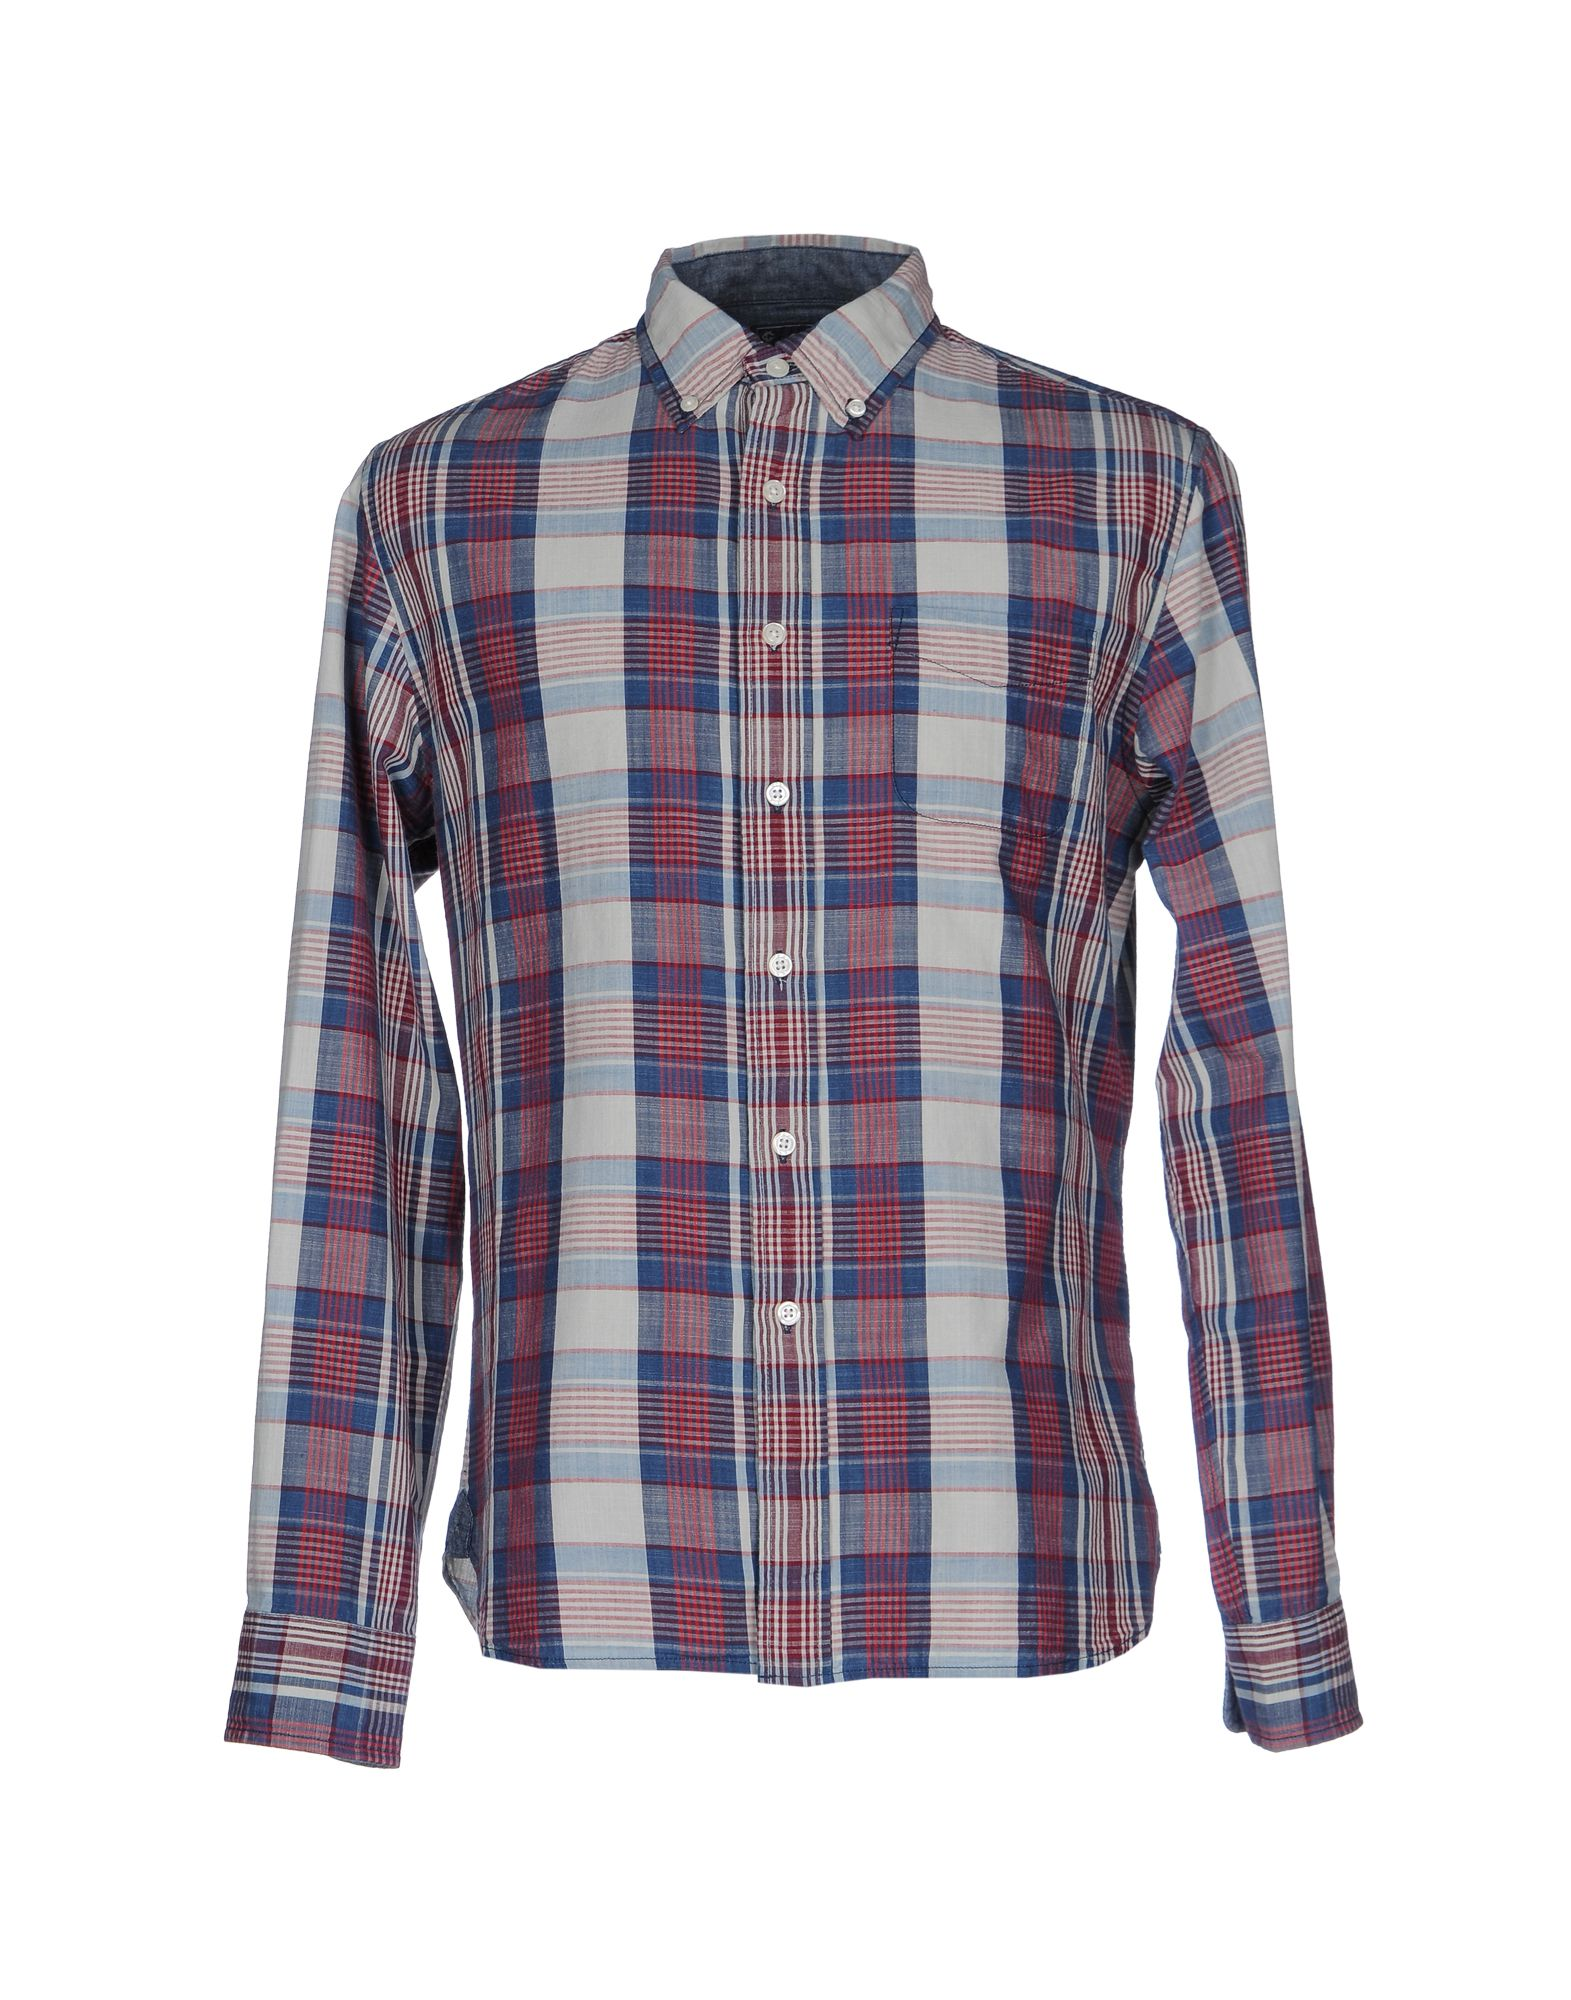 GRAYERS Checked Shirt in Brick Red